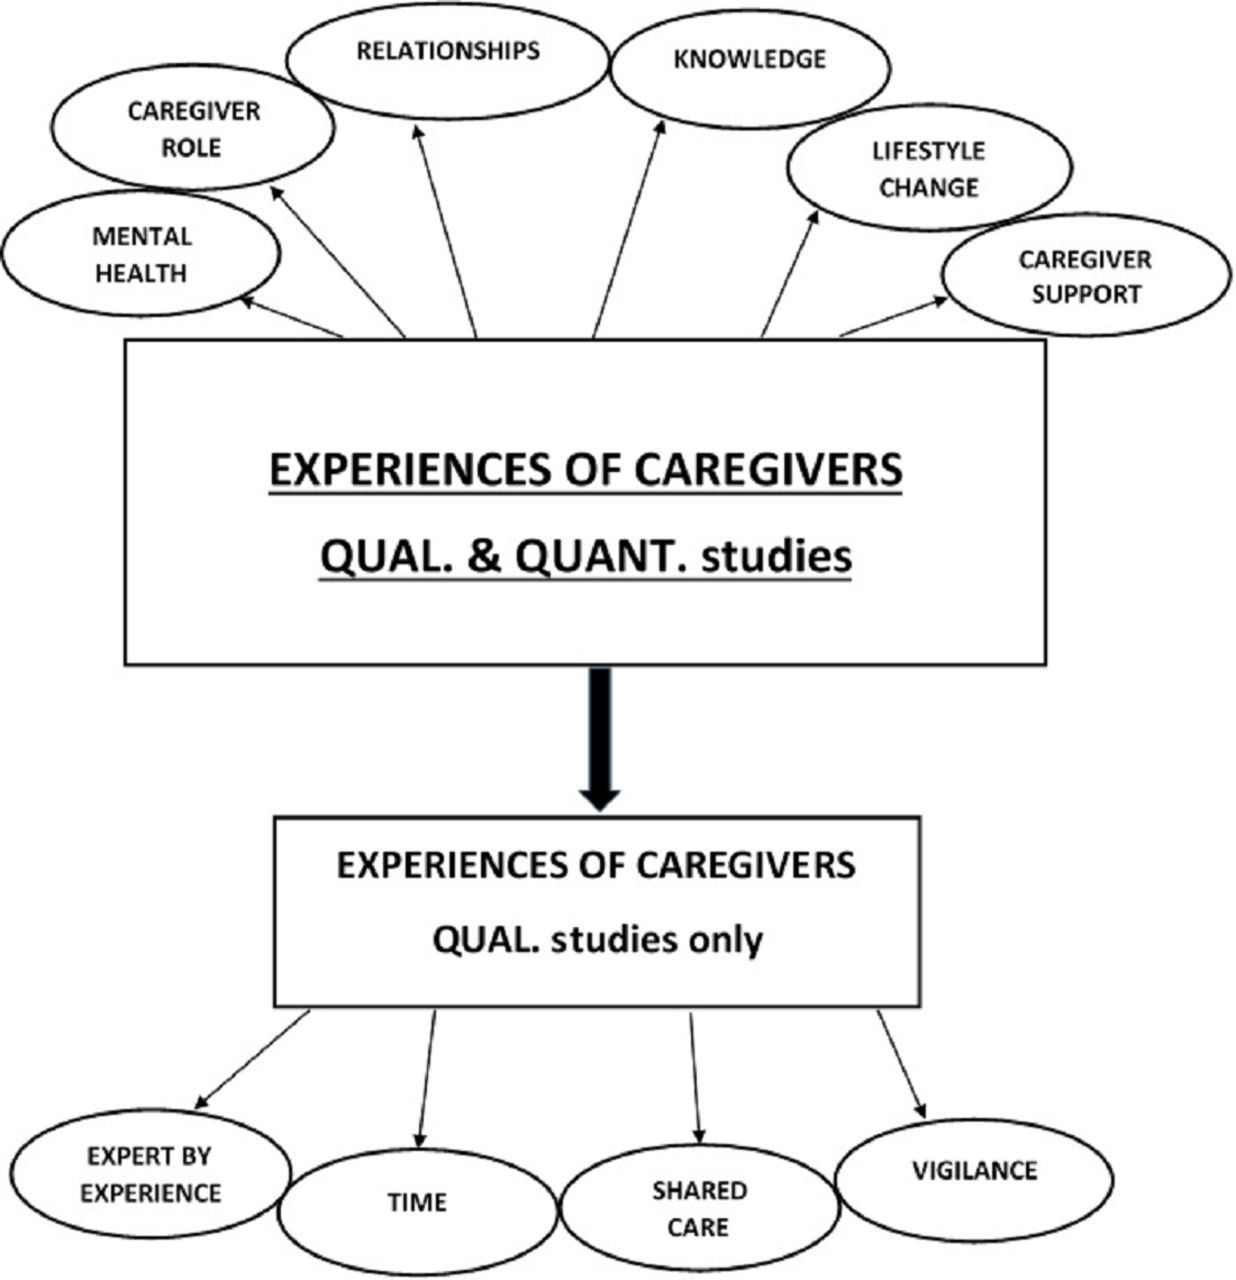 Who Cares?' The experiences of caregivers of adults living